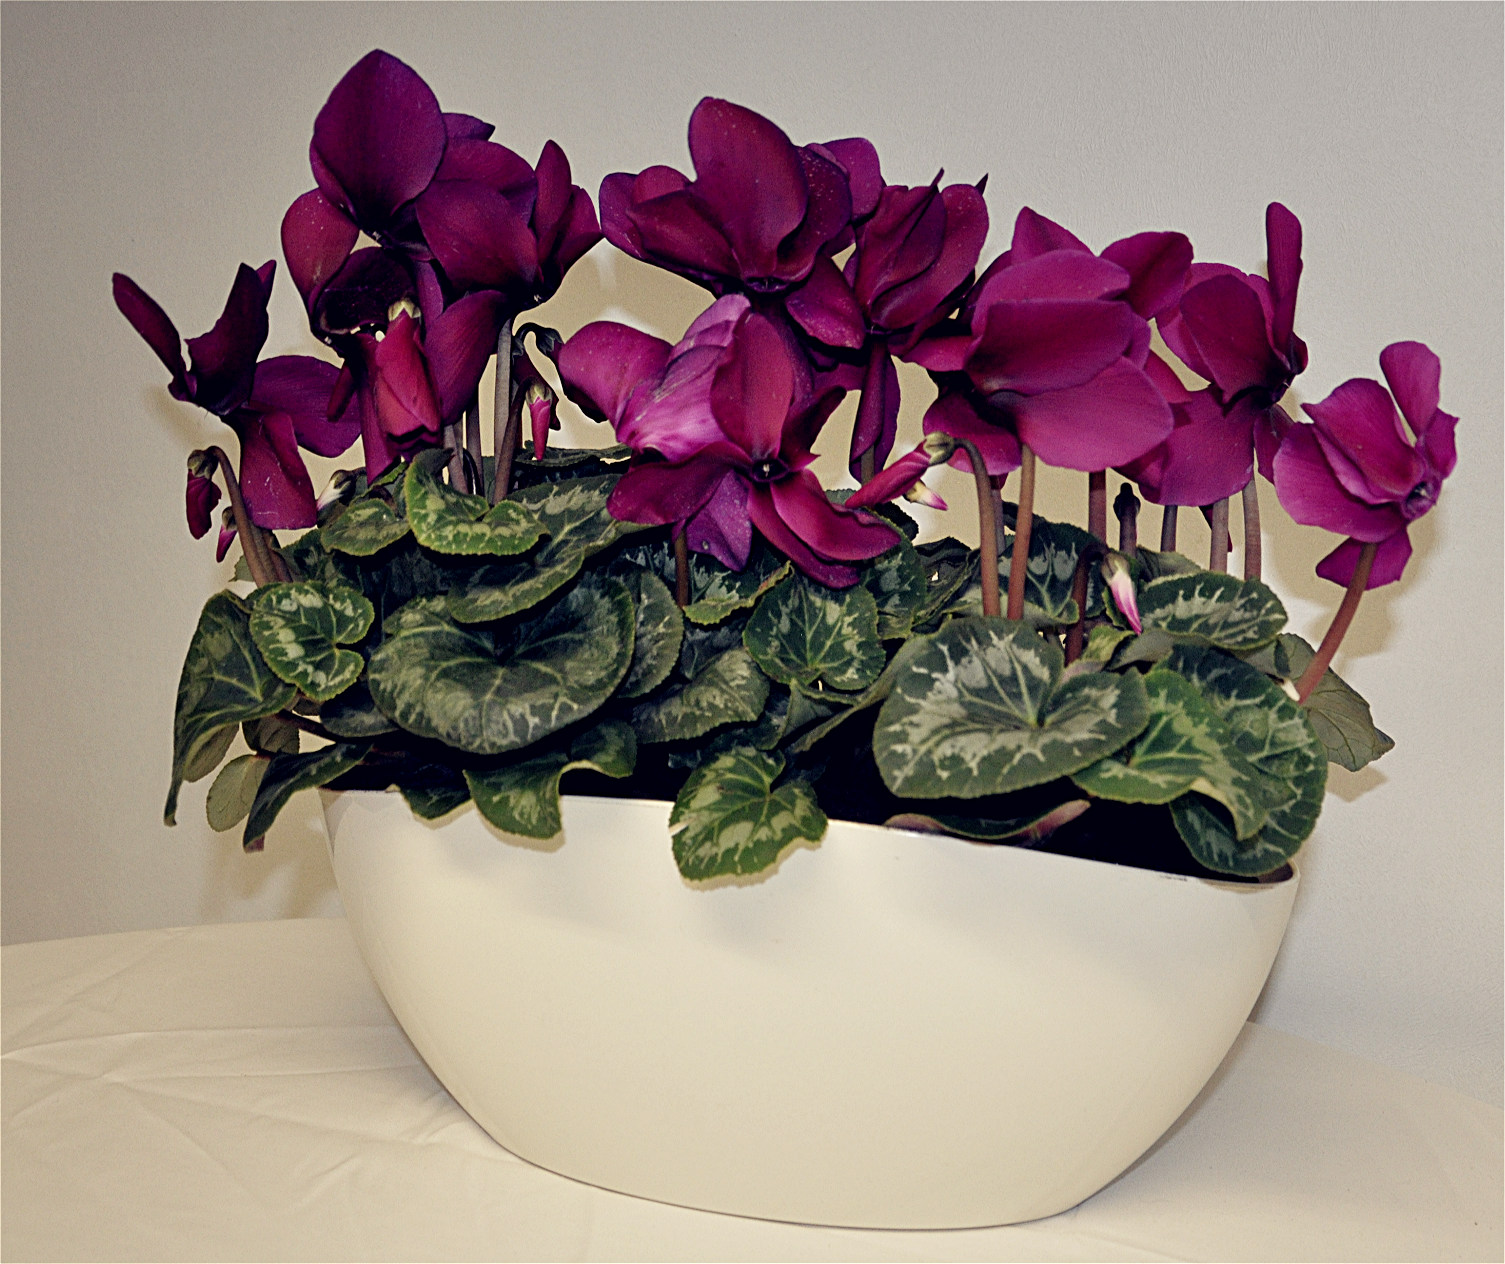 Cyclamen cream planter - Copy